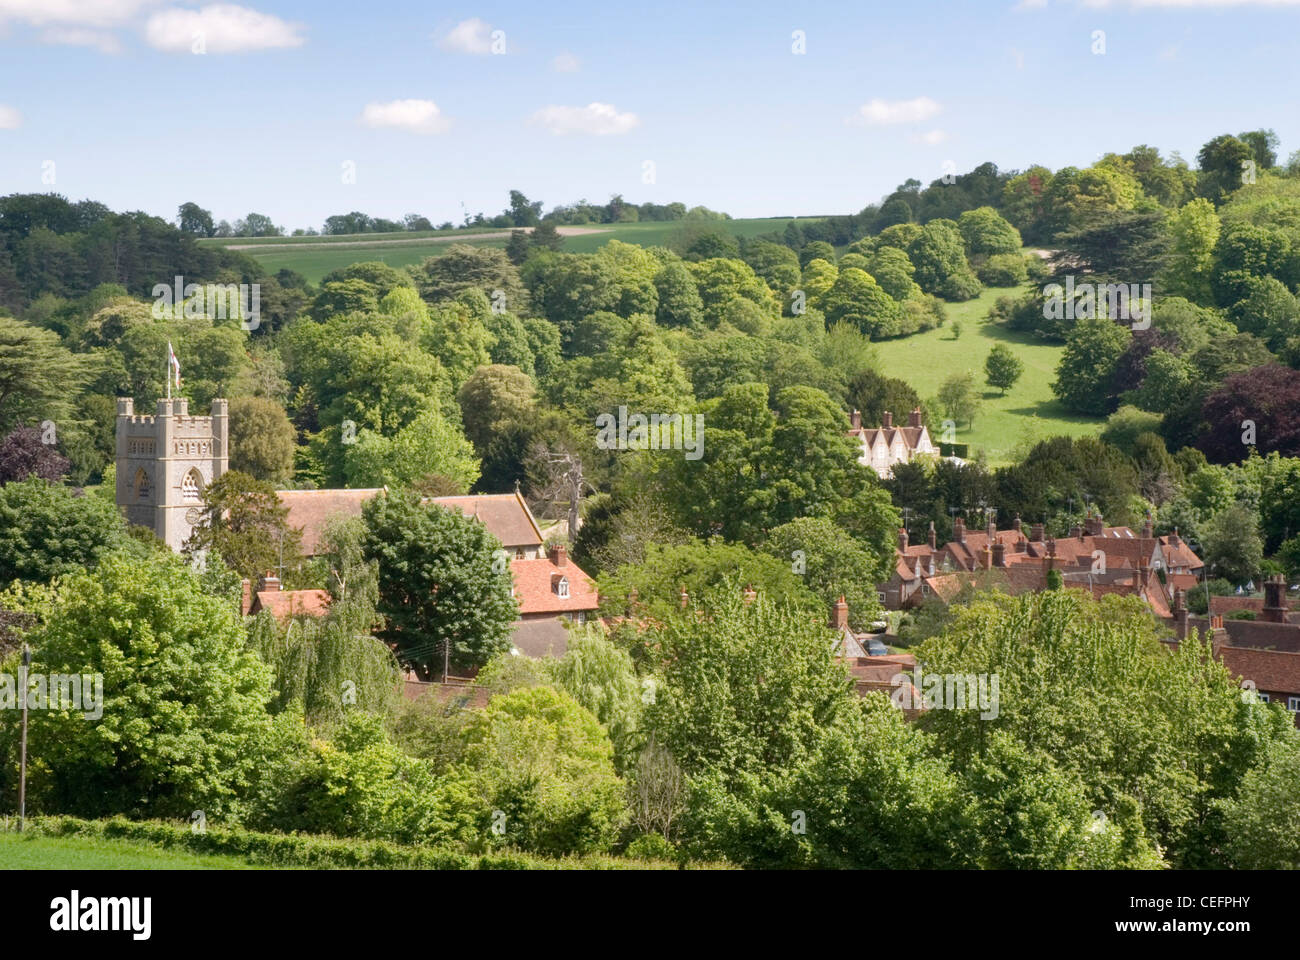 Chiltern Hills -view over sunlit  Hambleden village - Bucks - wooded hills - trees in early summer leaf - Stock Image